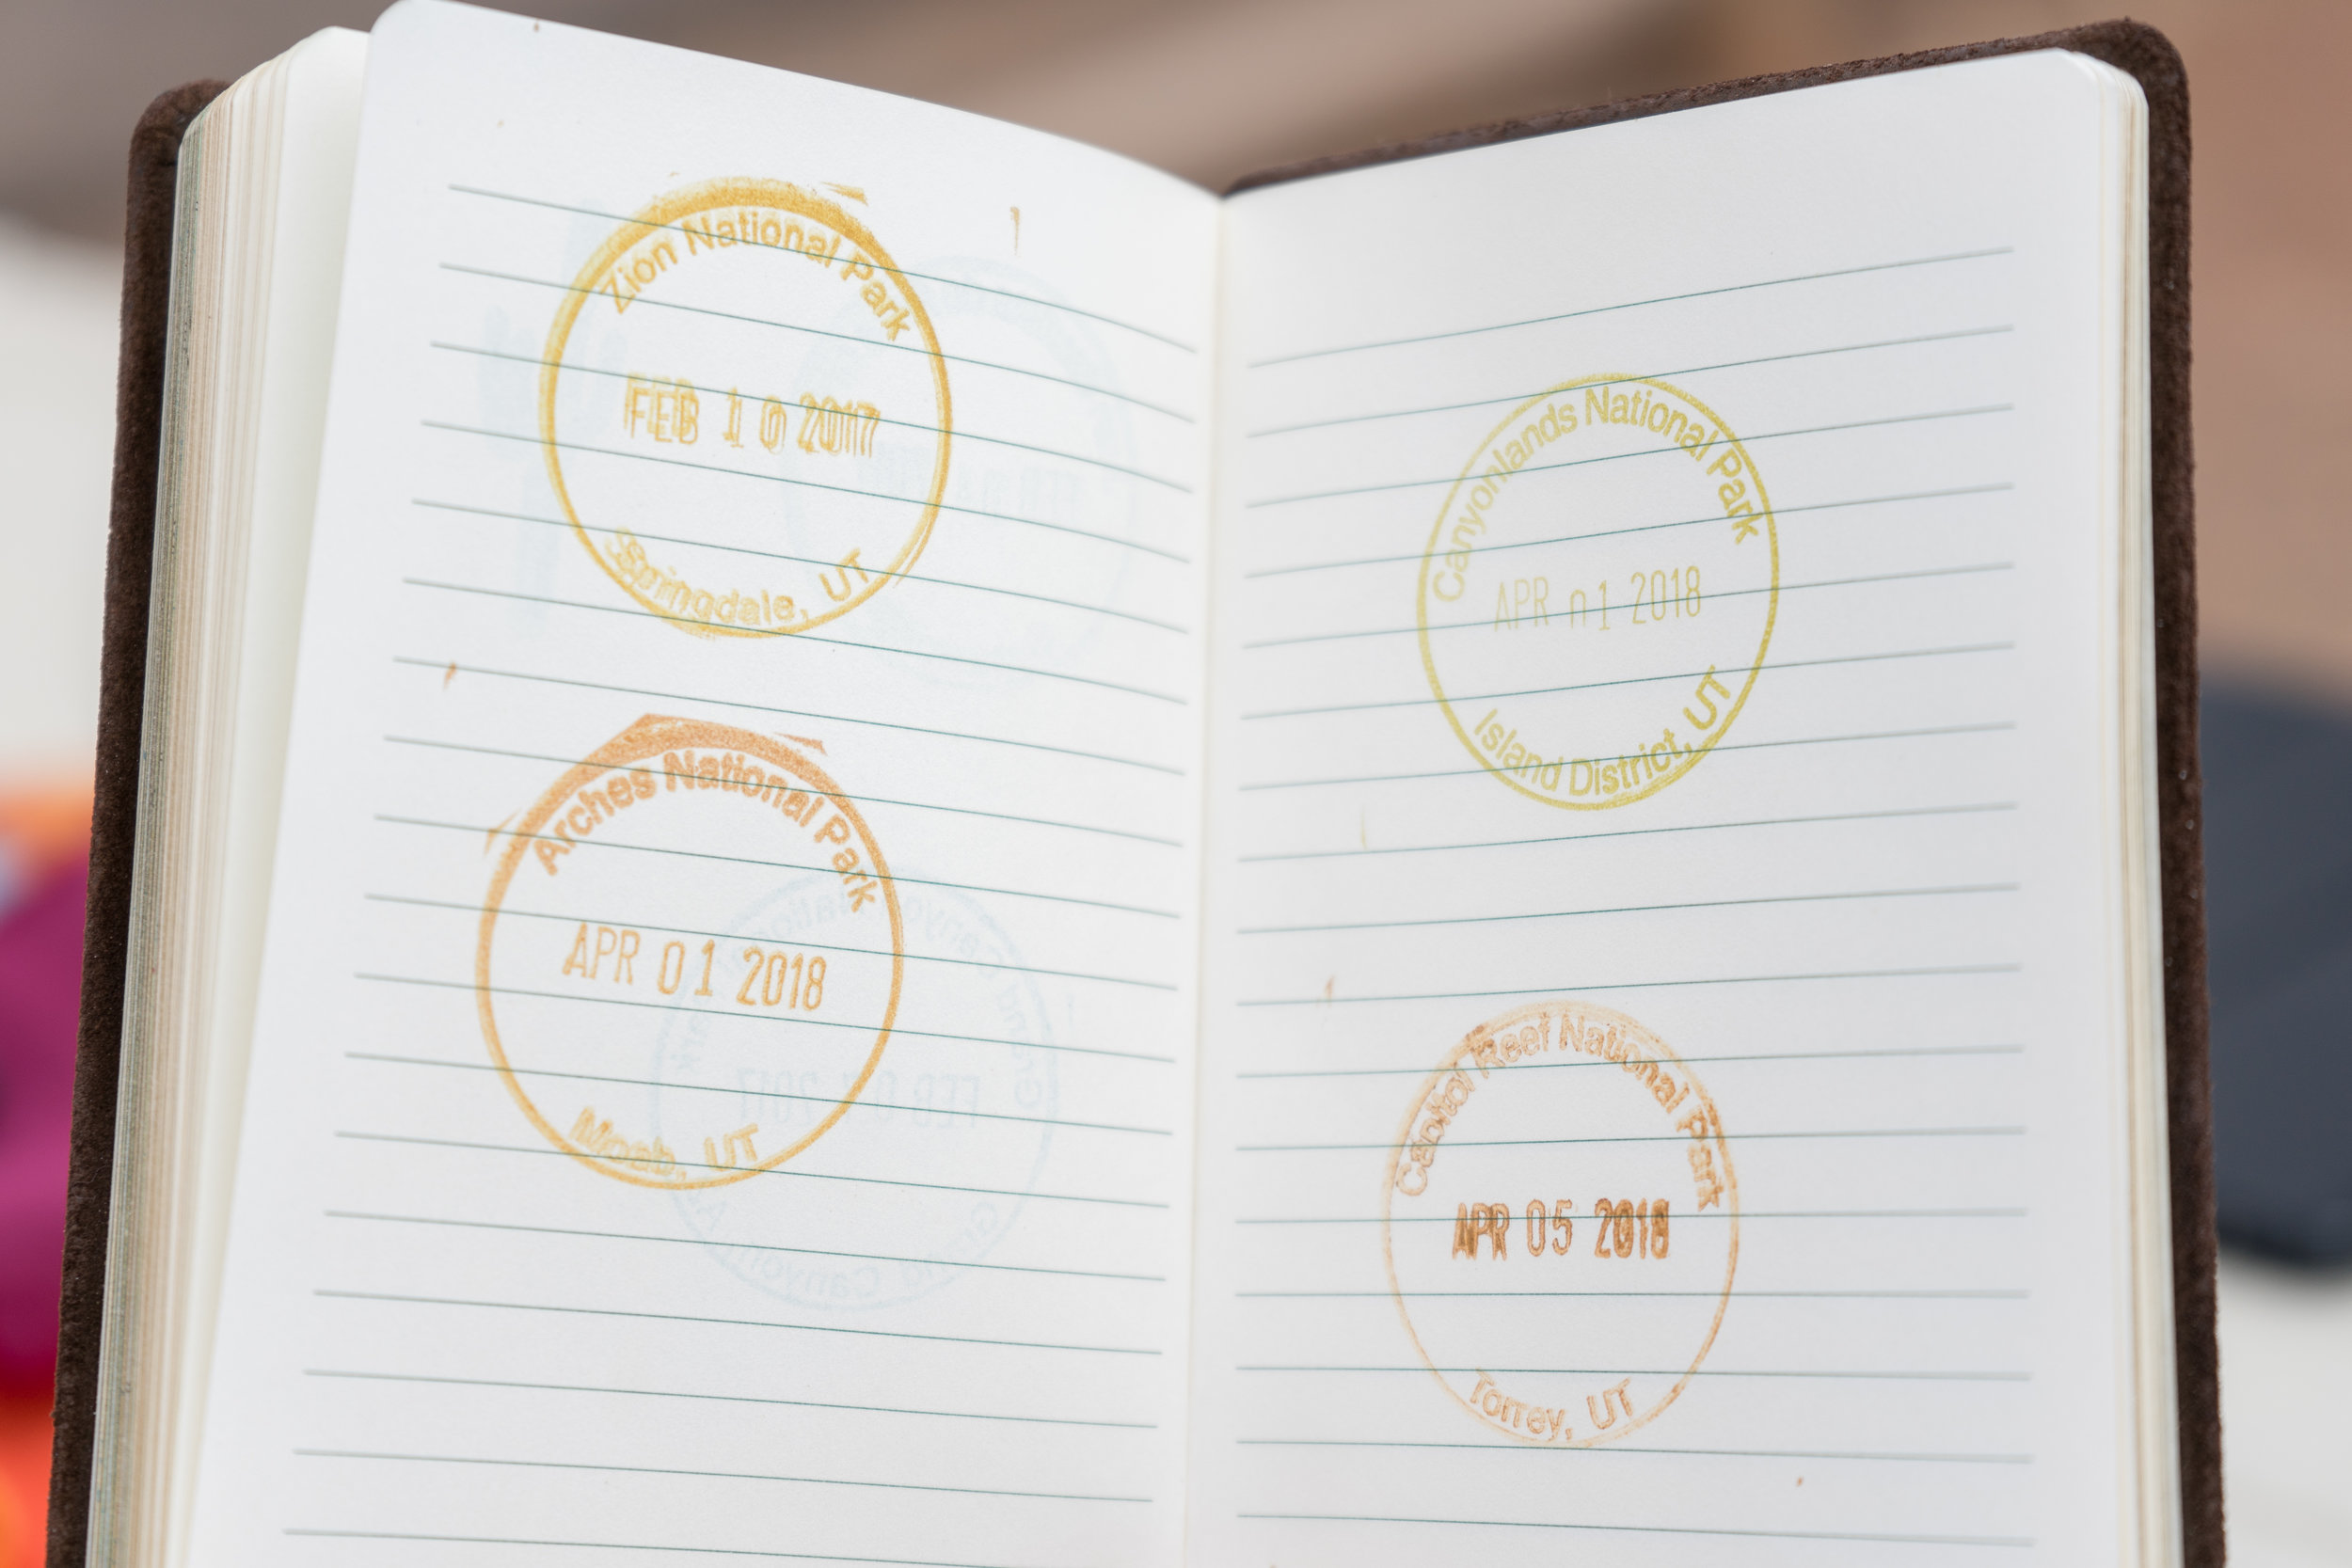 More stamps in the national park passport book